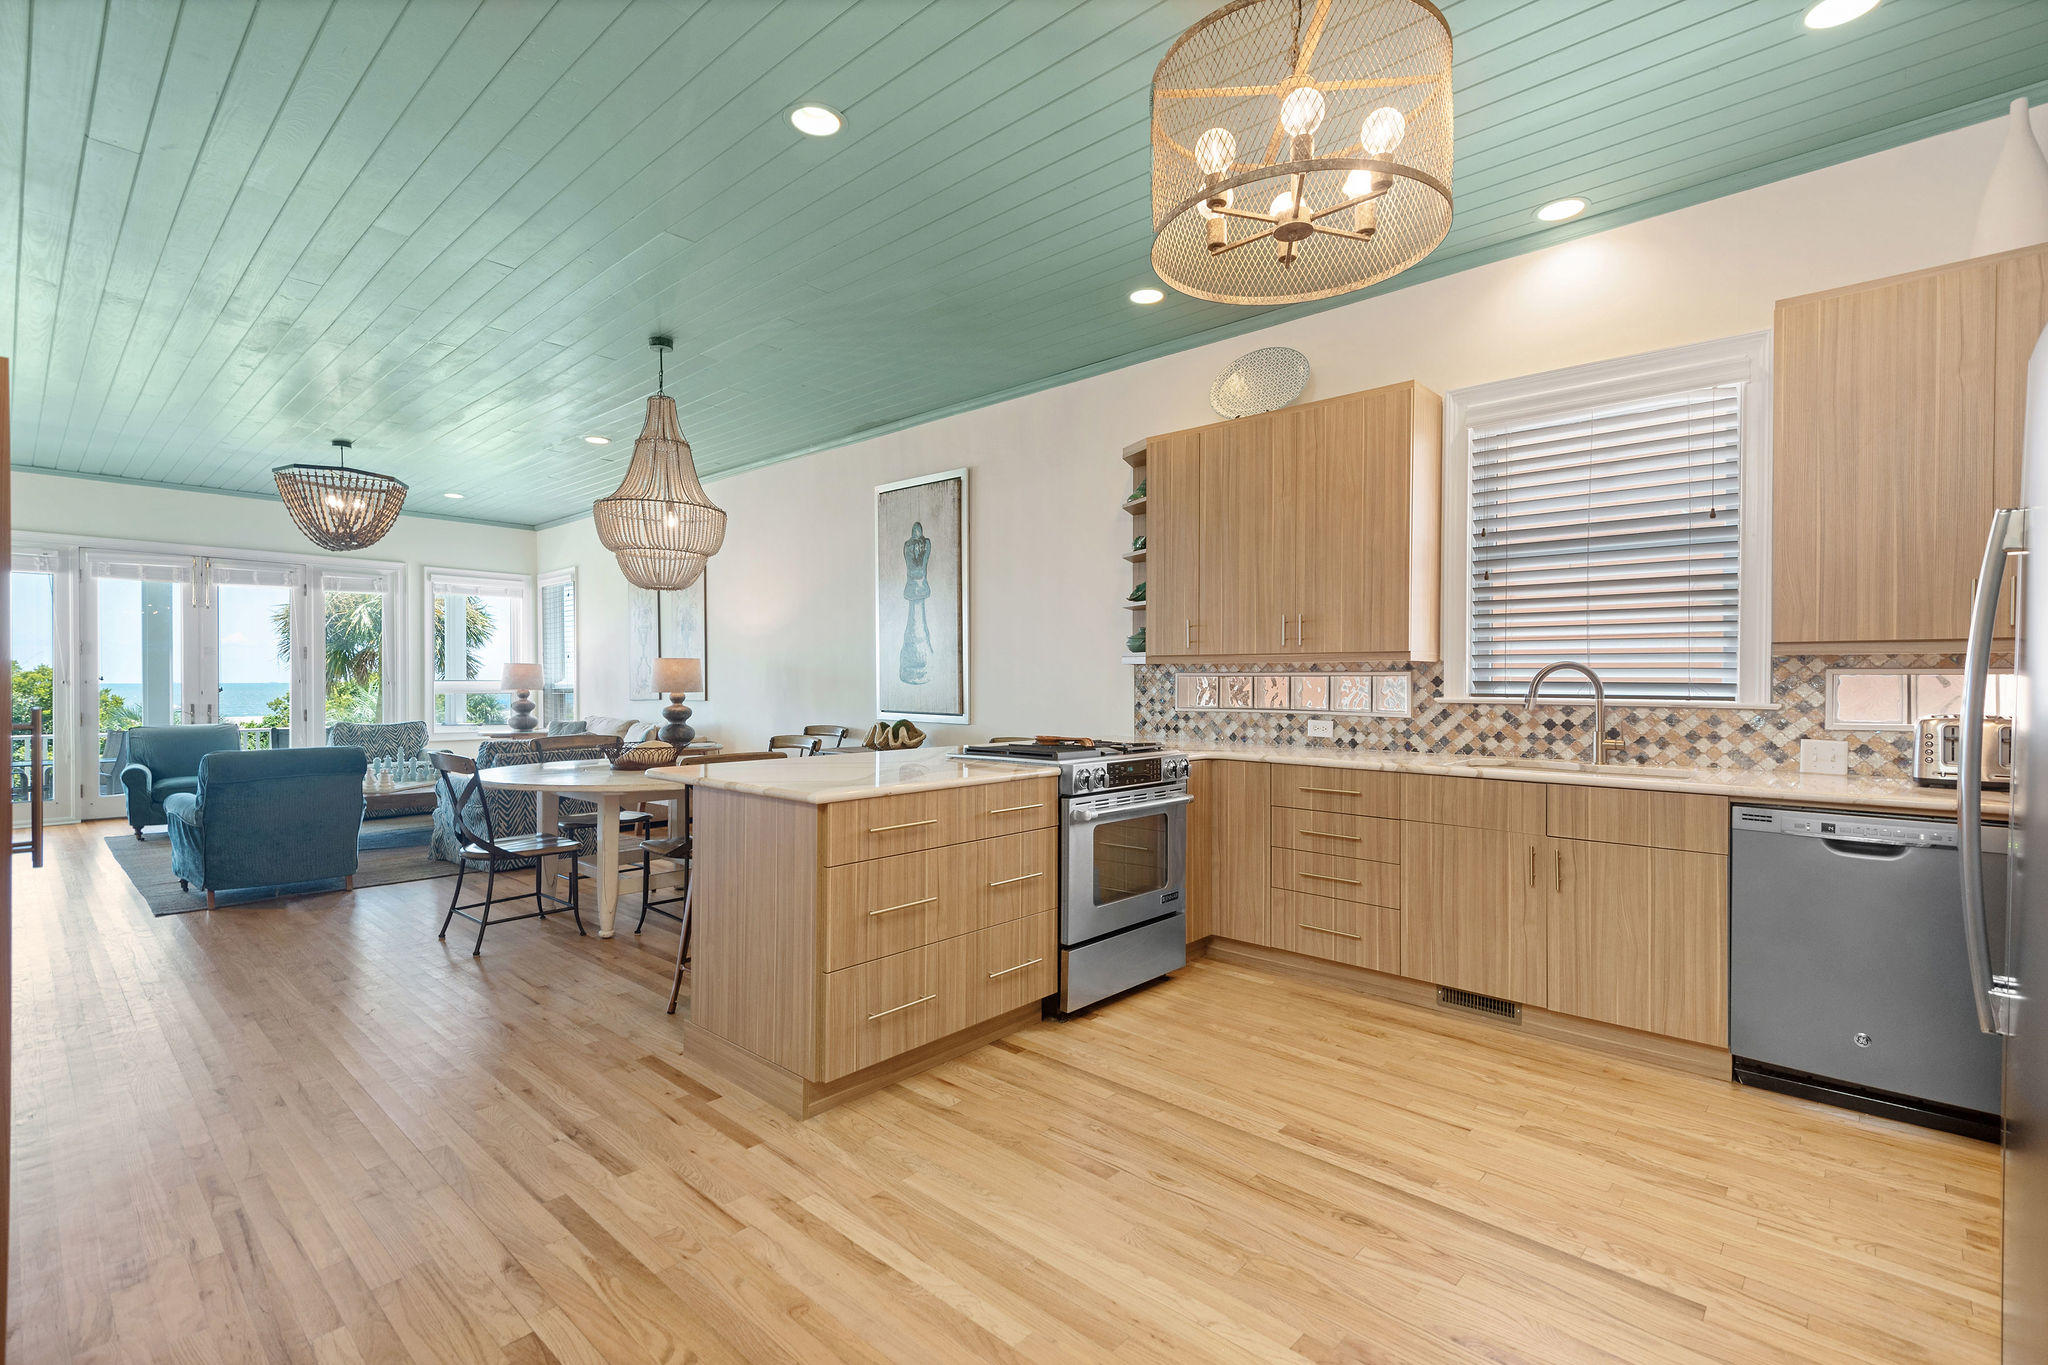 Wild Dunes Homes For Sale - 15 Grand Pavilion, Isle of Palms, SC - 54